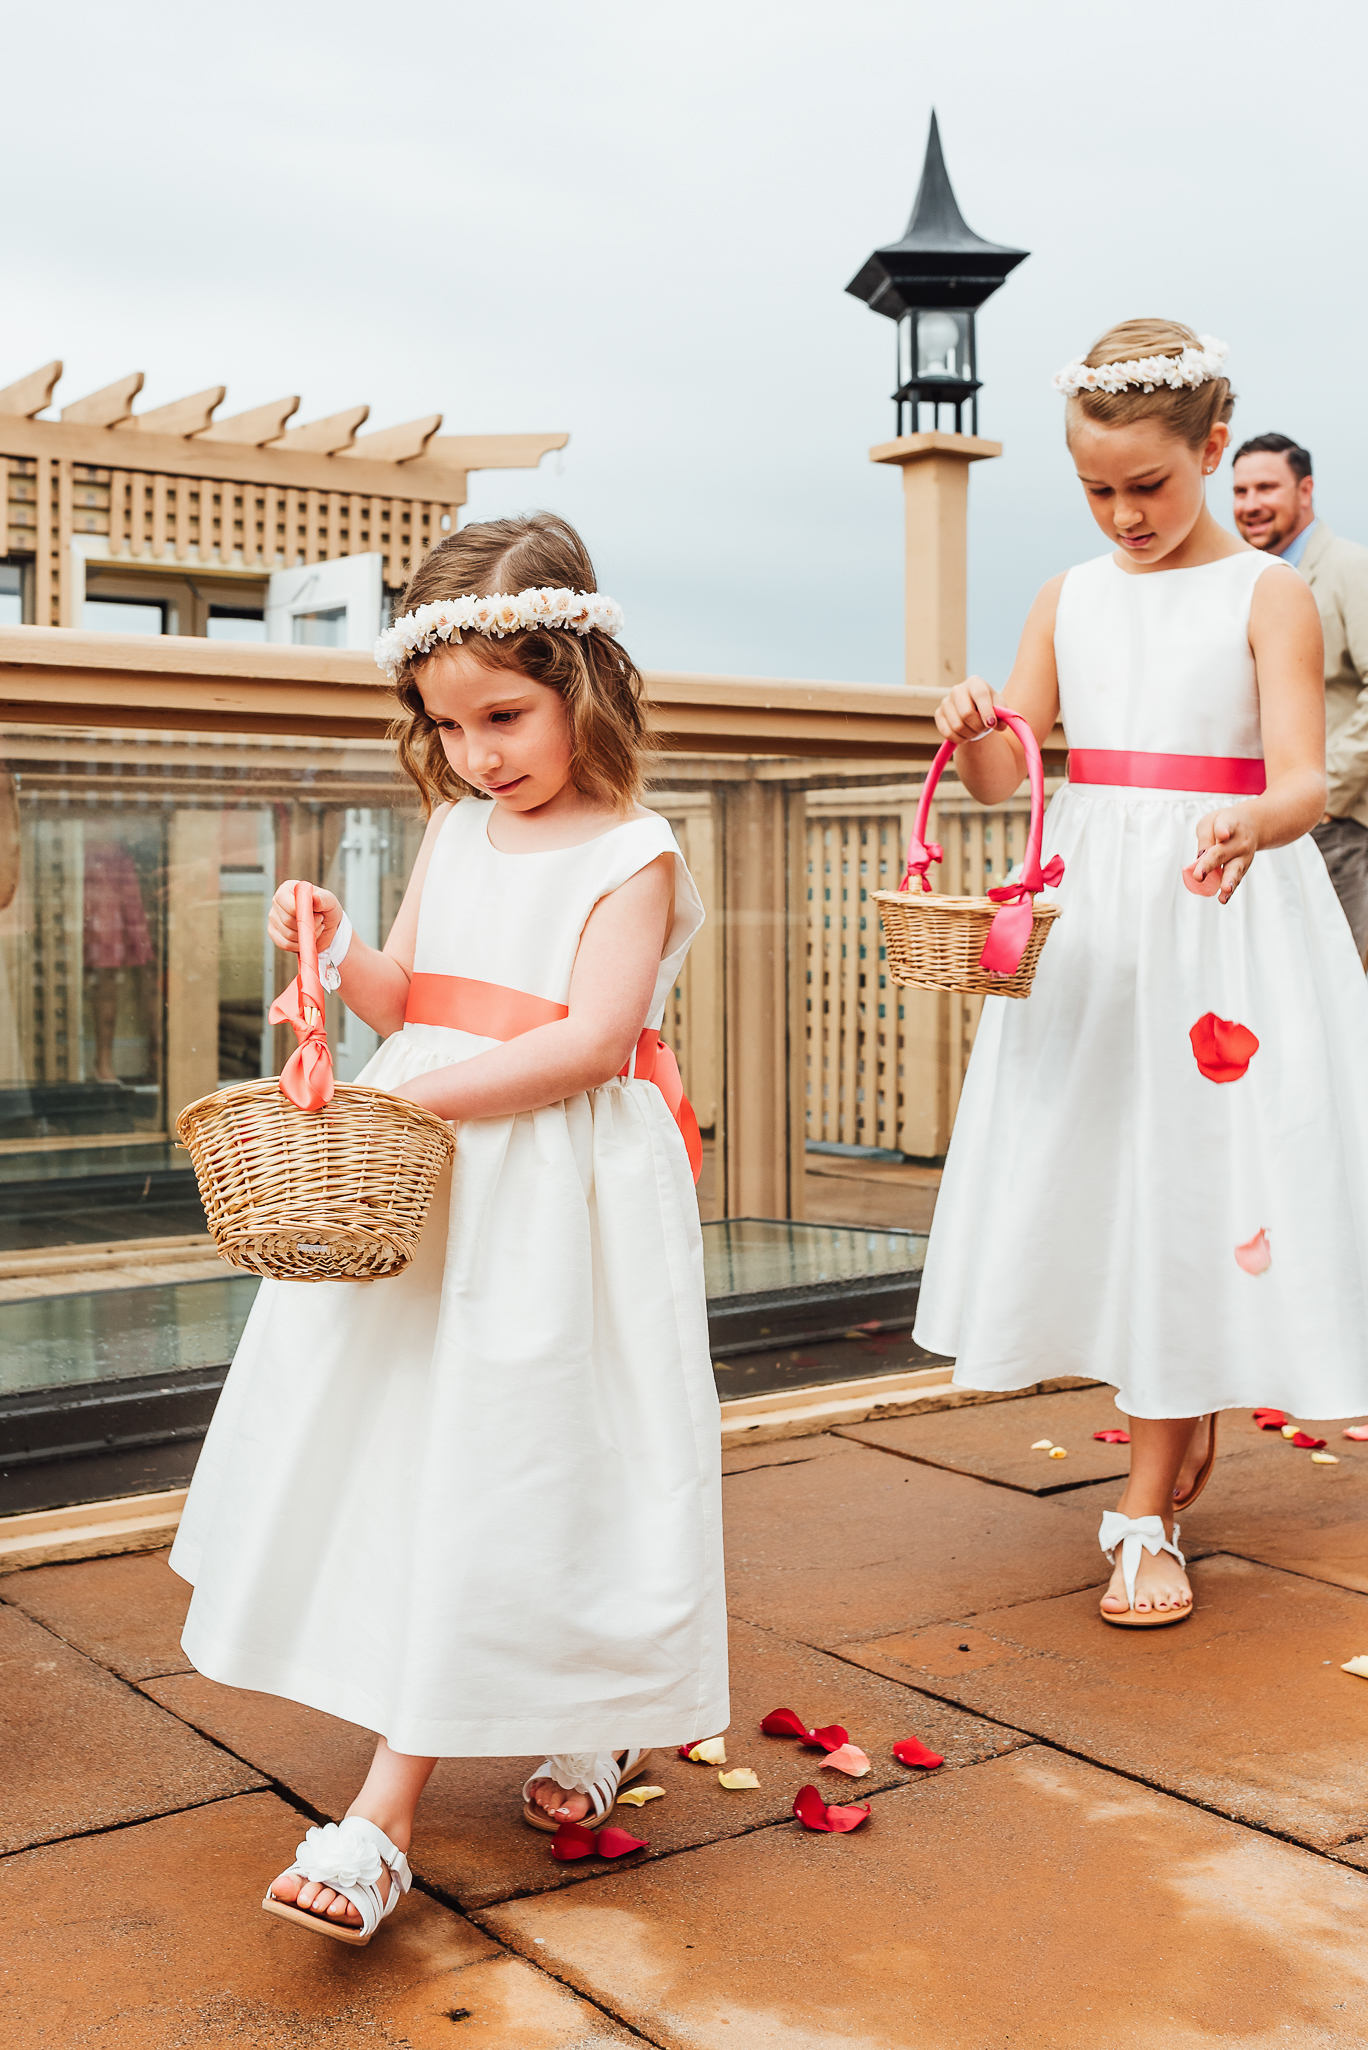 Lily_and_Lane_Childrens_Photographer_Victoria_BC-24.jpg